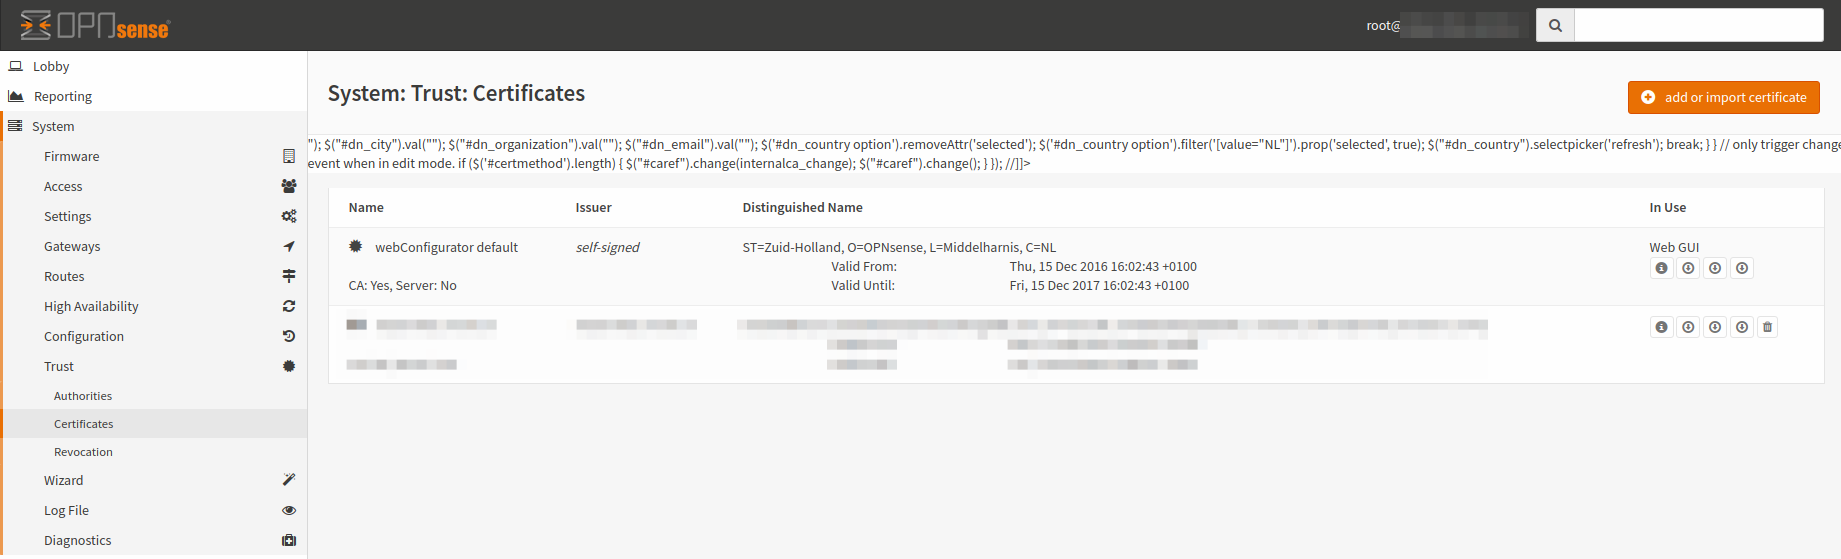 Xss in custom root certificate issue 1964 opnsensecore github adding a certificate over there 1betcityfo Image collections